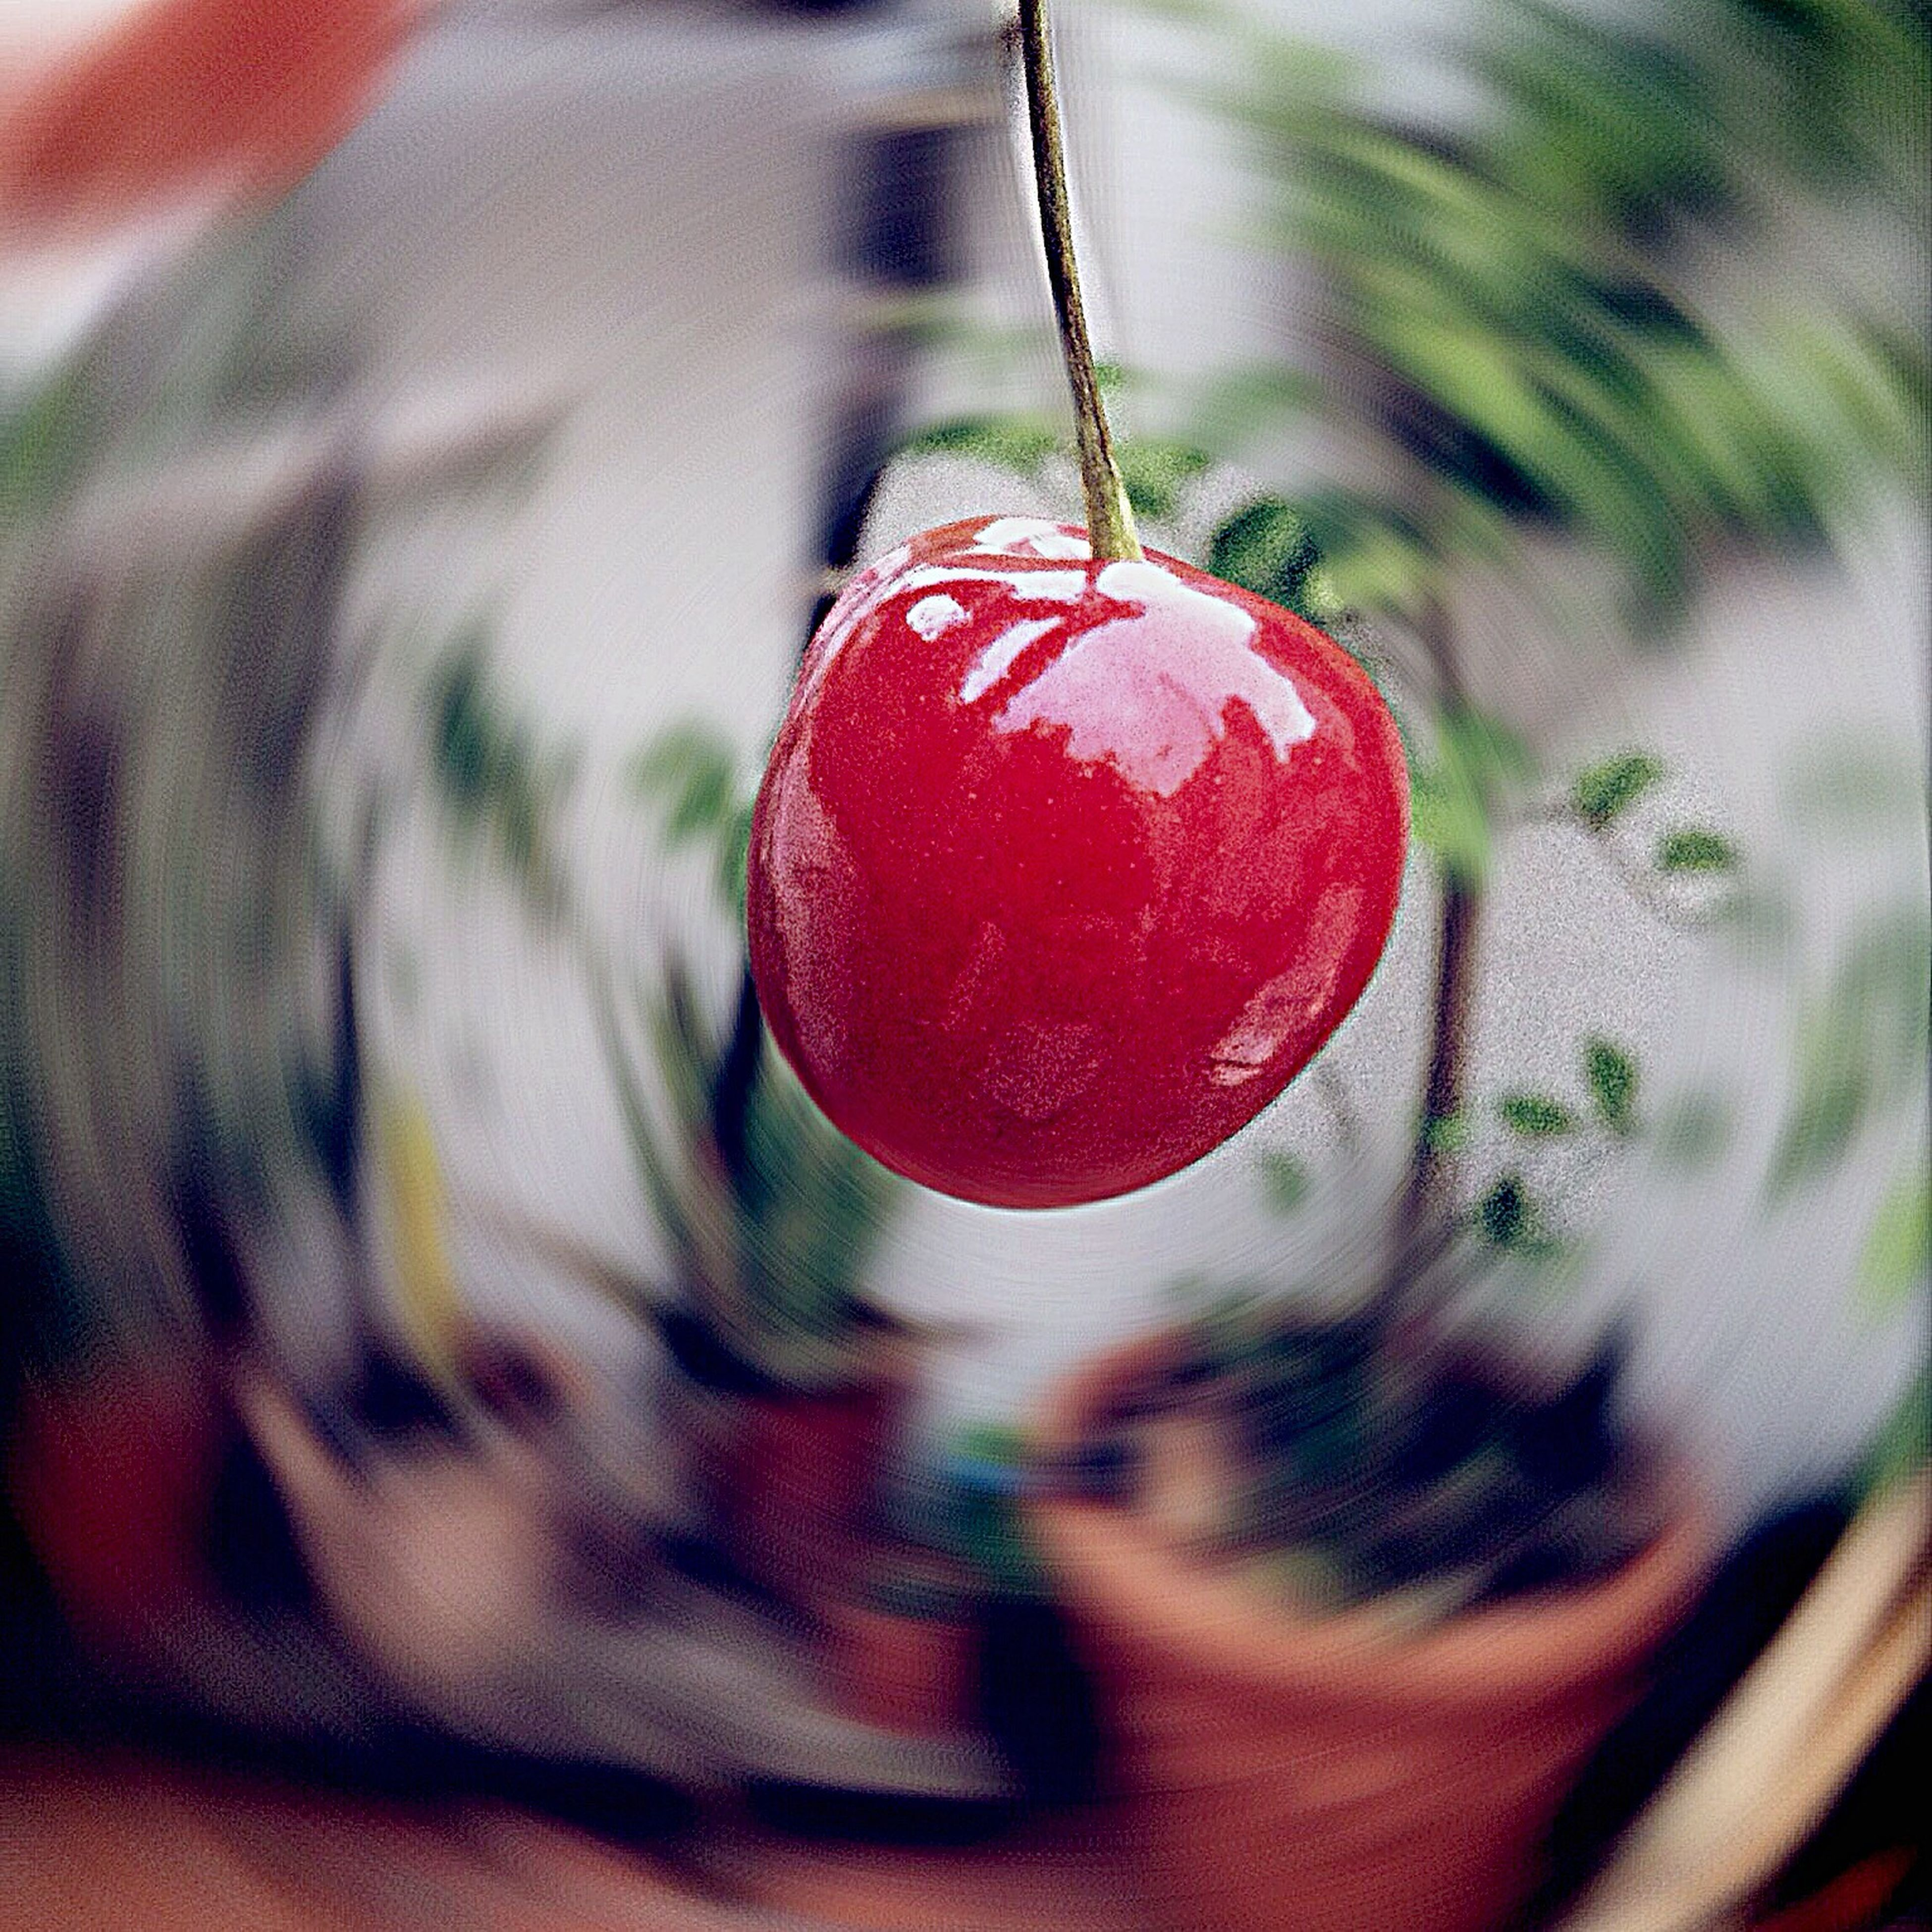 red, close-up, food and drink, fruit, focus on foreground, selective focus, berry fruit, cherry, strawberry, no people, still life, food, heart shape, hanging, indoors, freshness, love, ripe, day, christmas